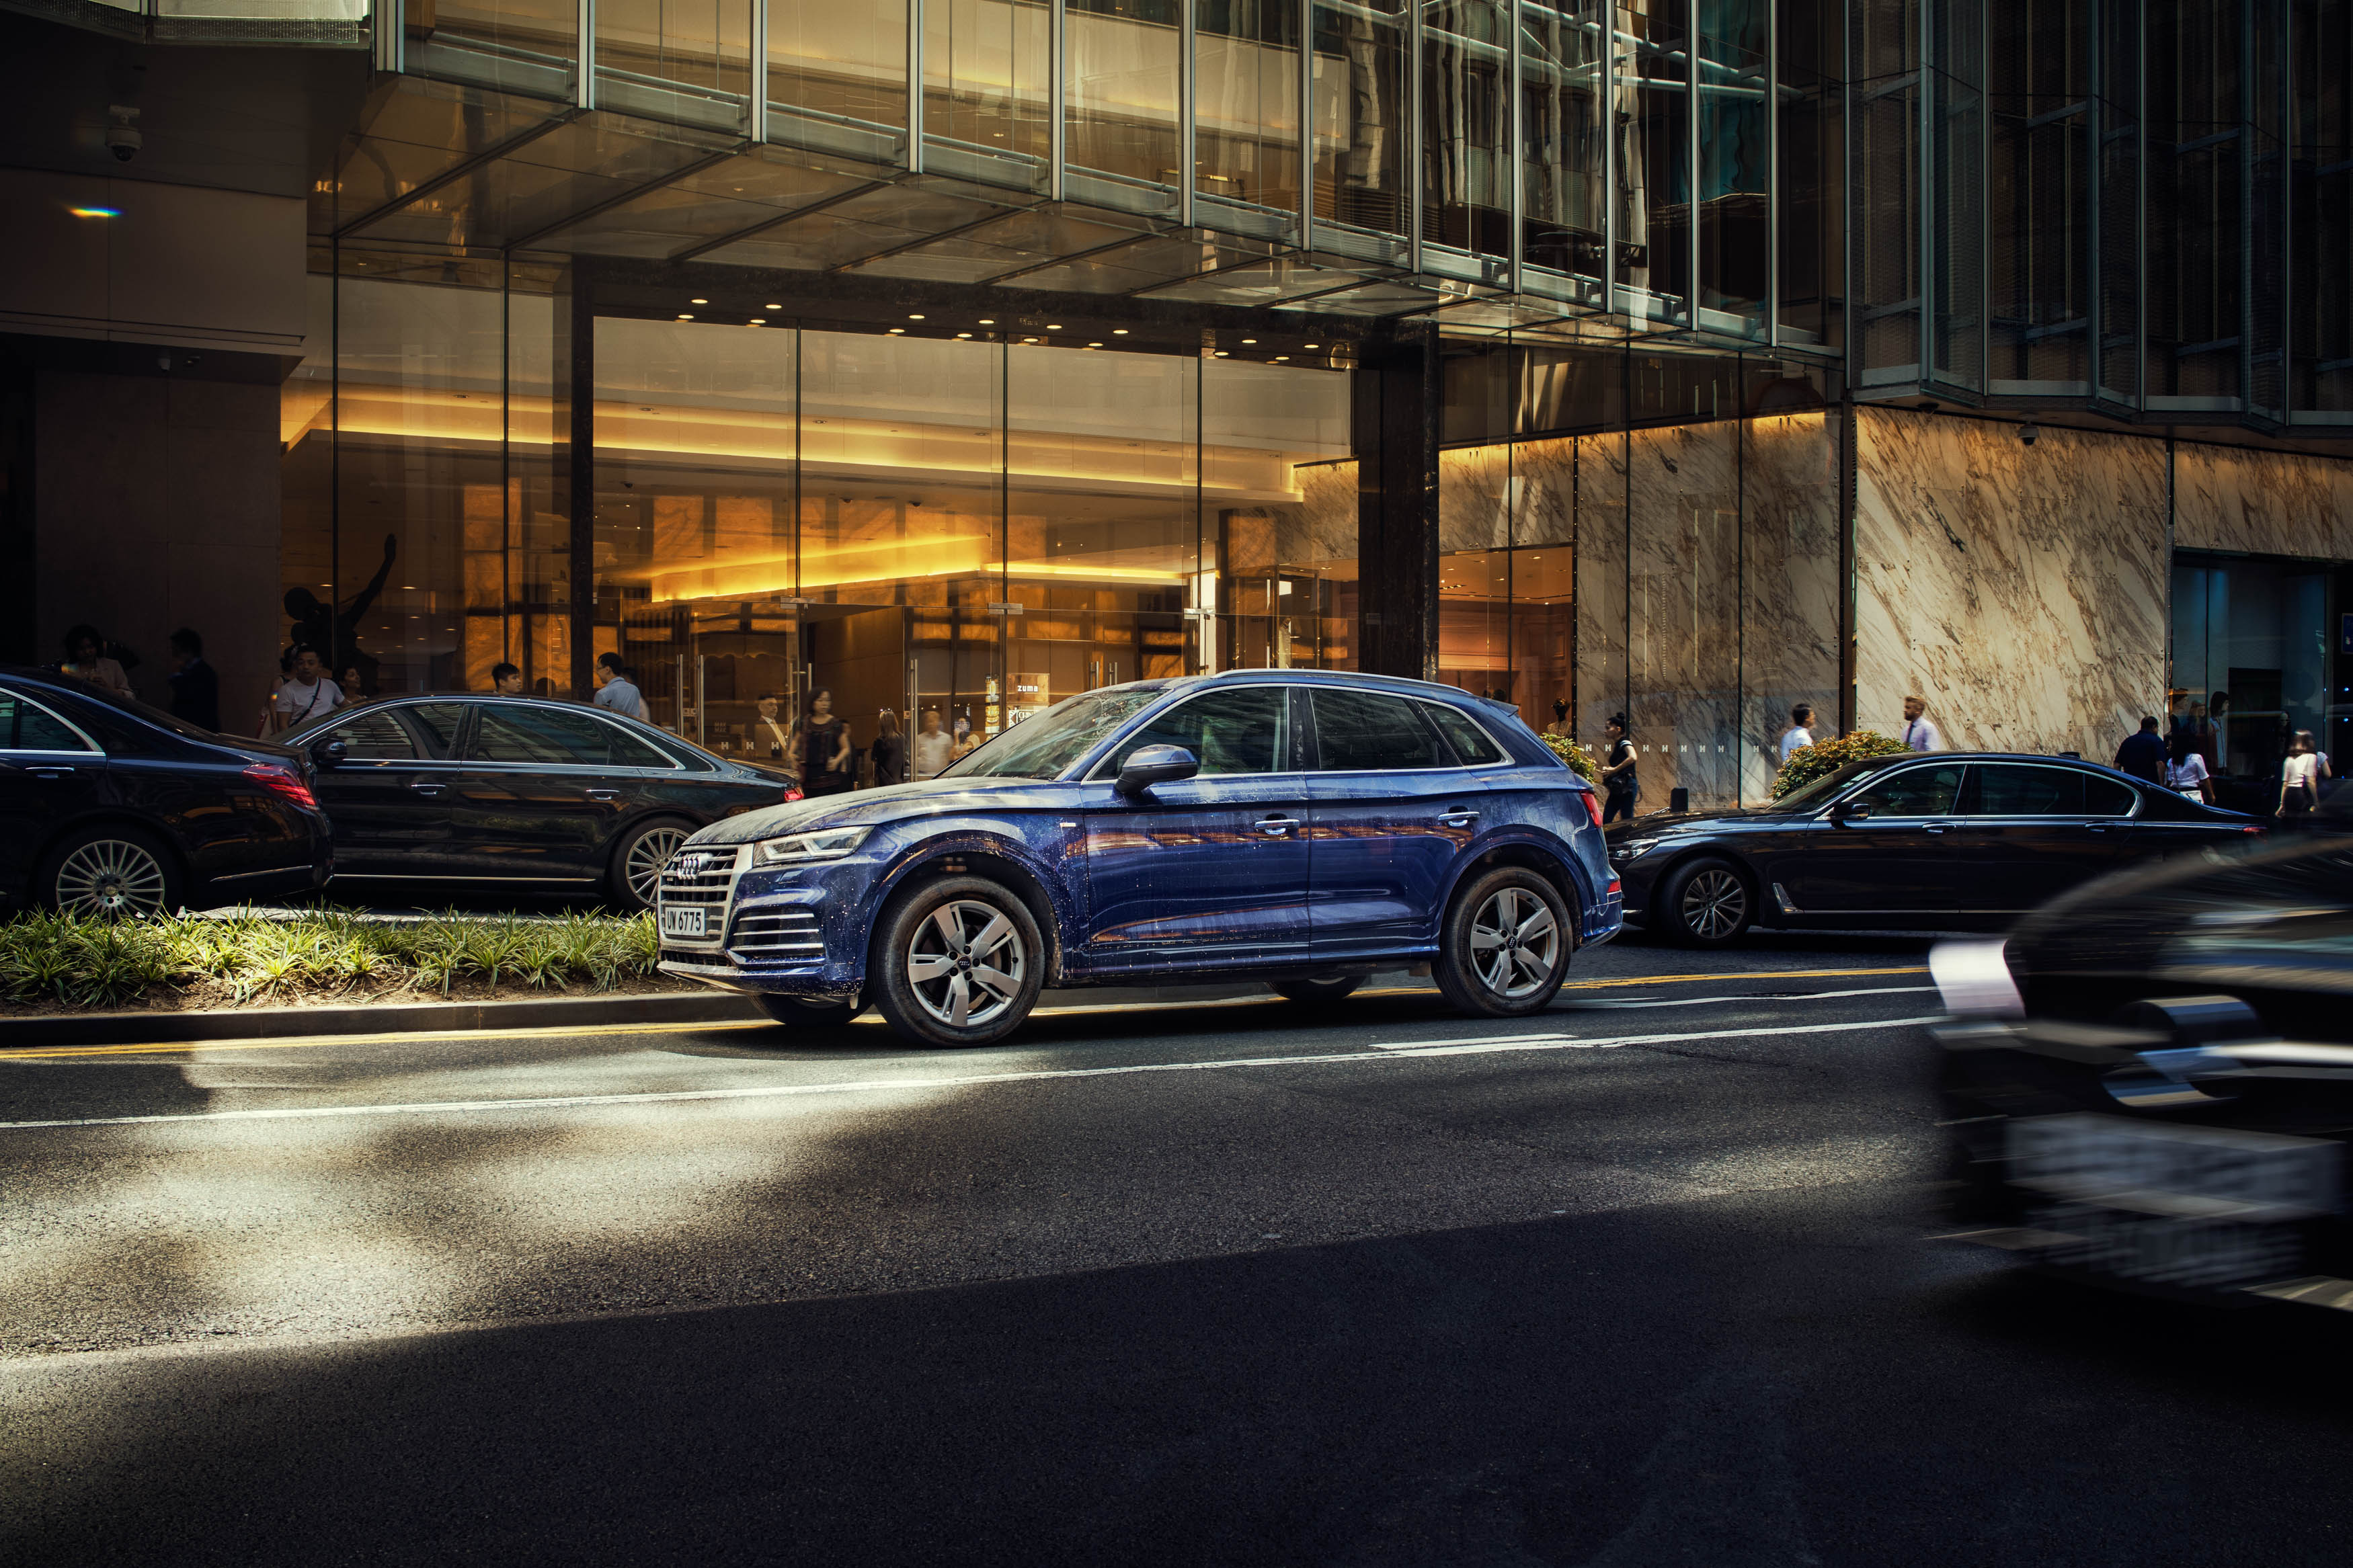 migs-foto-cgi-photographer-automotive-car-hong-kong-michael-lee-advtertising-commercial-photography-audi-r8-smurf-blue-2018MIGSLimitedAudiQ5-visual1_f01